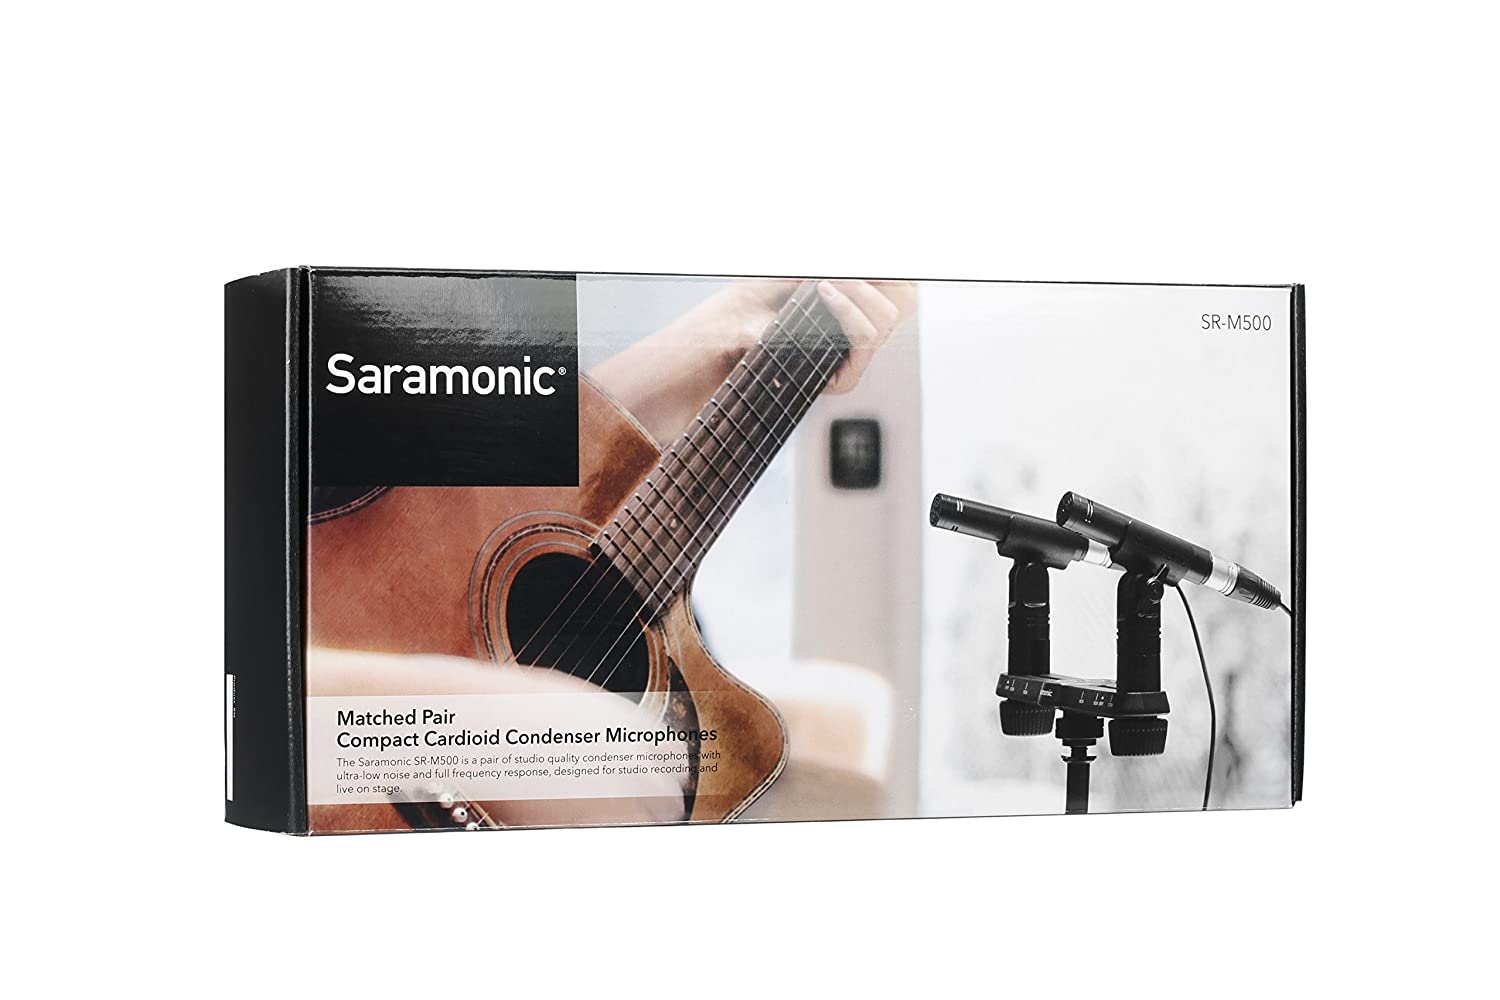 Saramonic Sr M500 Matched Pair Of Compact Cardioid Studio Condenser Ultra Low Noise Microphone Microphones With Windshields Mic Clips And Spacing Bar Mounting Bracket For Vocal